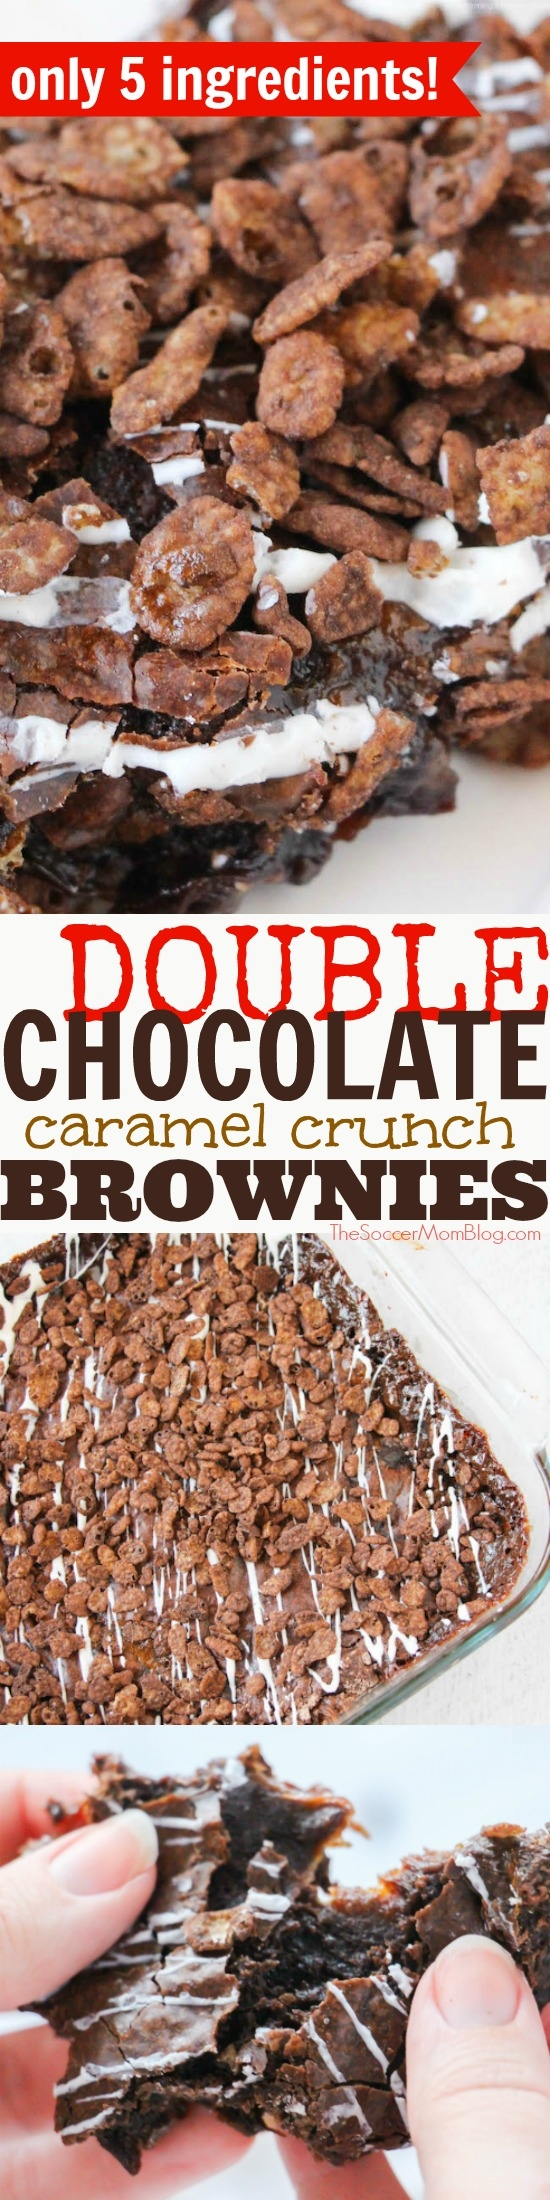 """The best brownies ever!"" These Double Chocolate Caramel Crunch Brownies win high praise and leave no leftovers! Easy holiday dessert recipe box brownie mix hack."